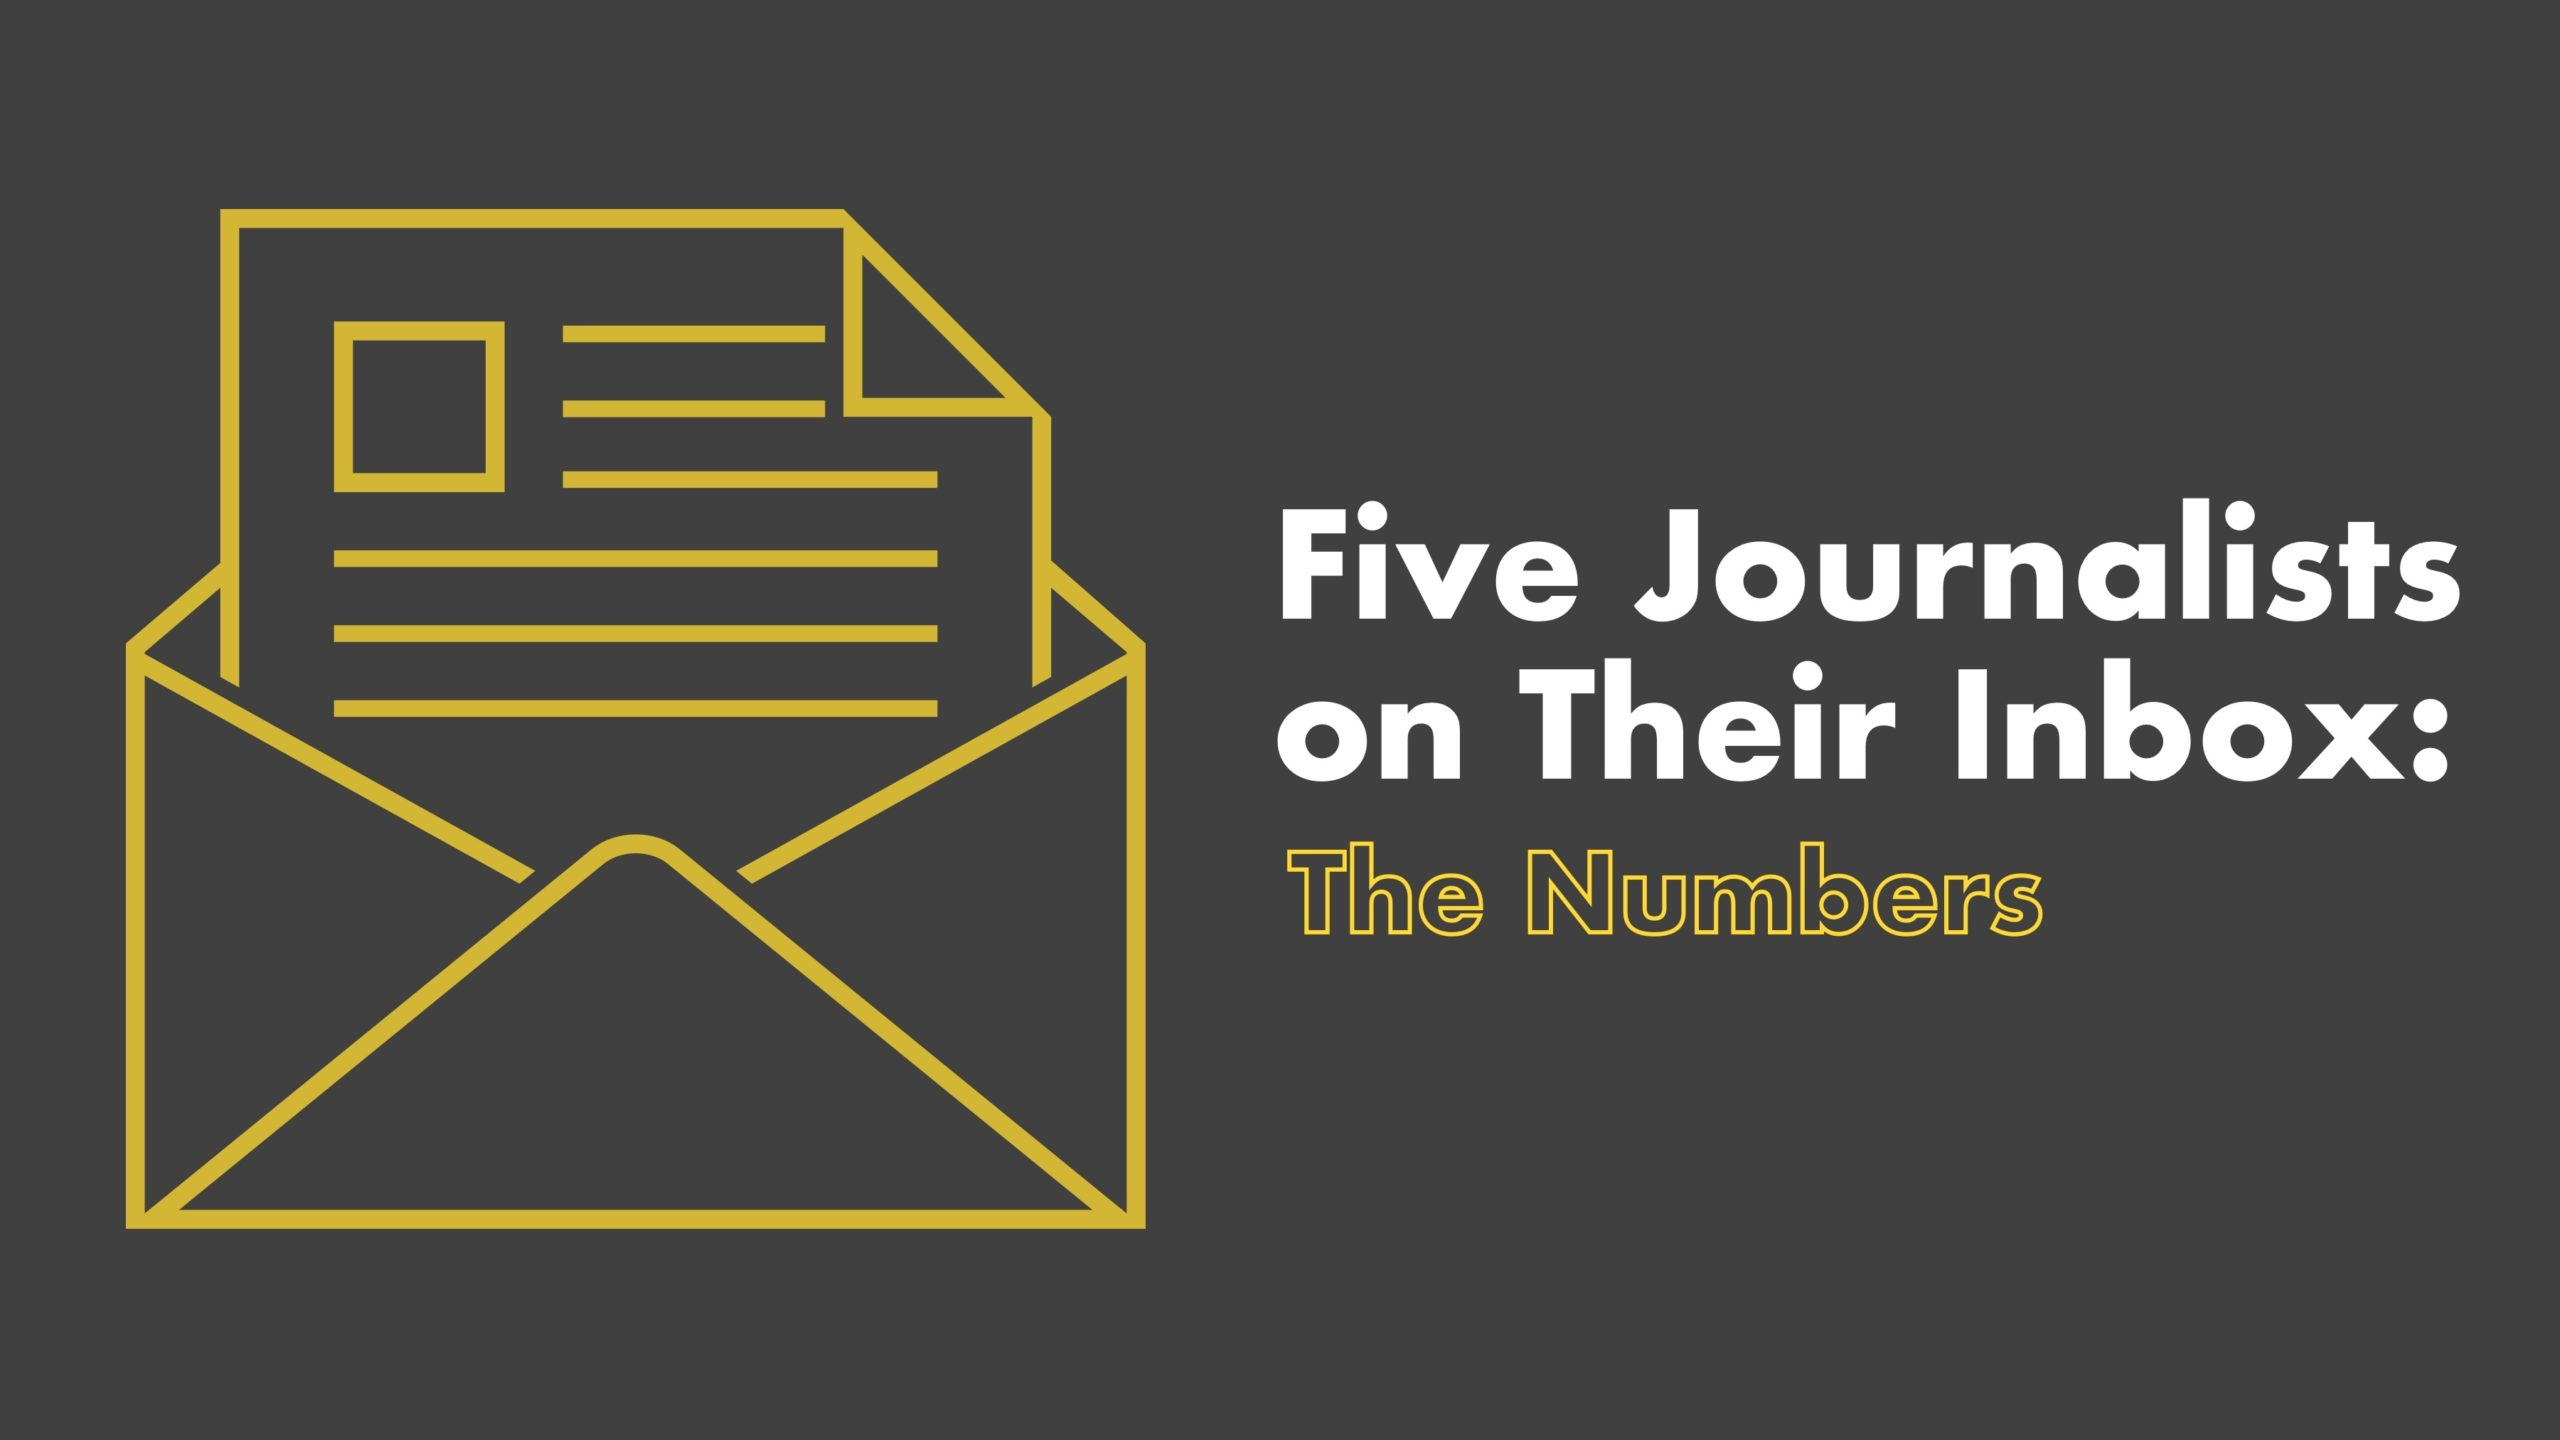 5 Journalists On Their Inbox: The Numbers